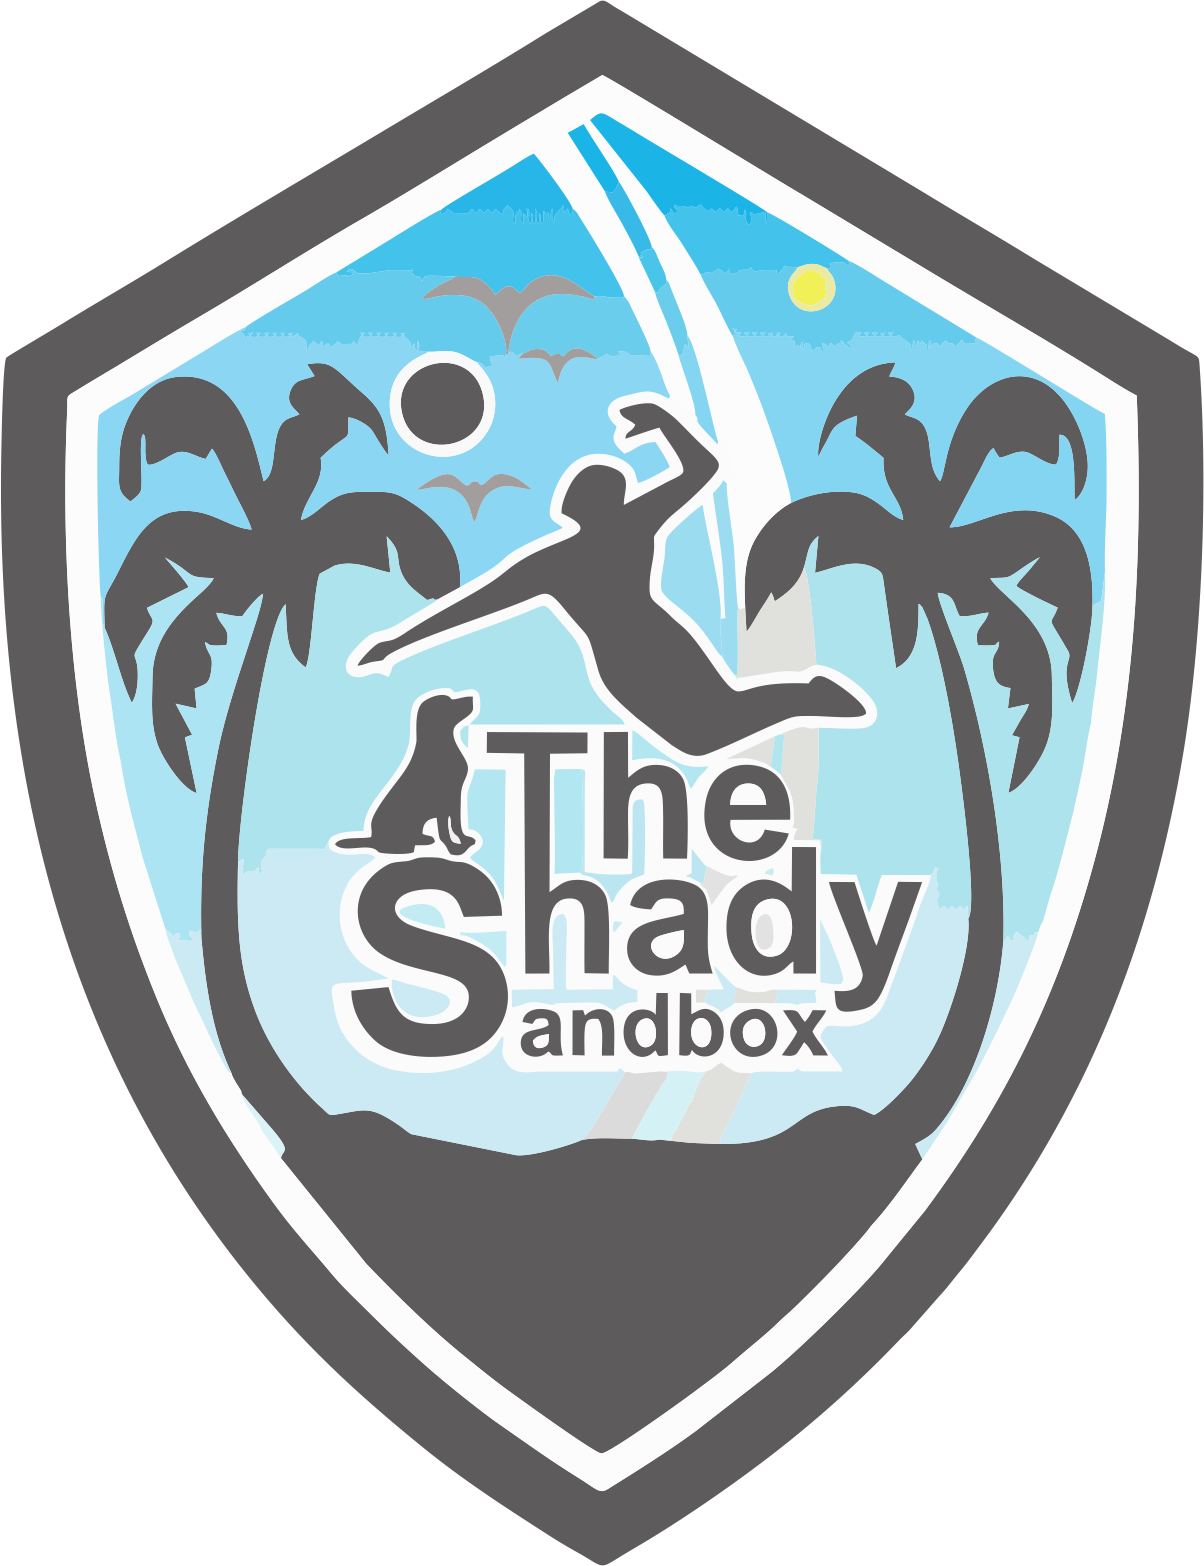 The Shady Sandbox